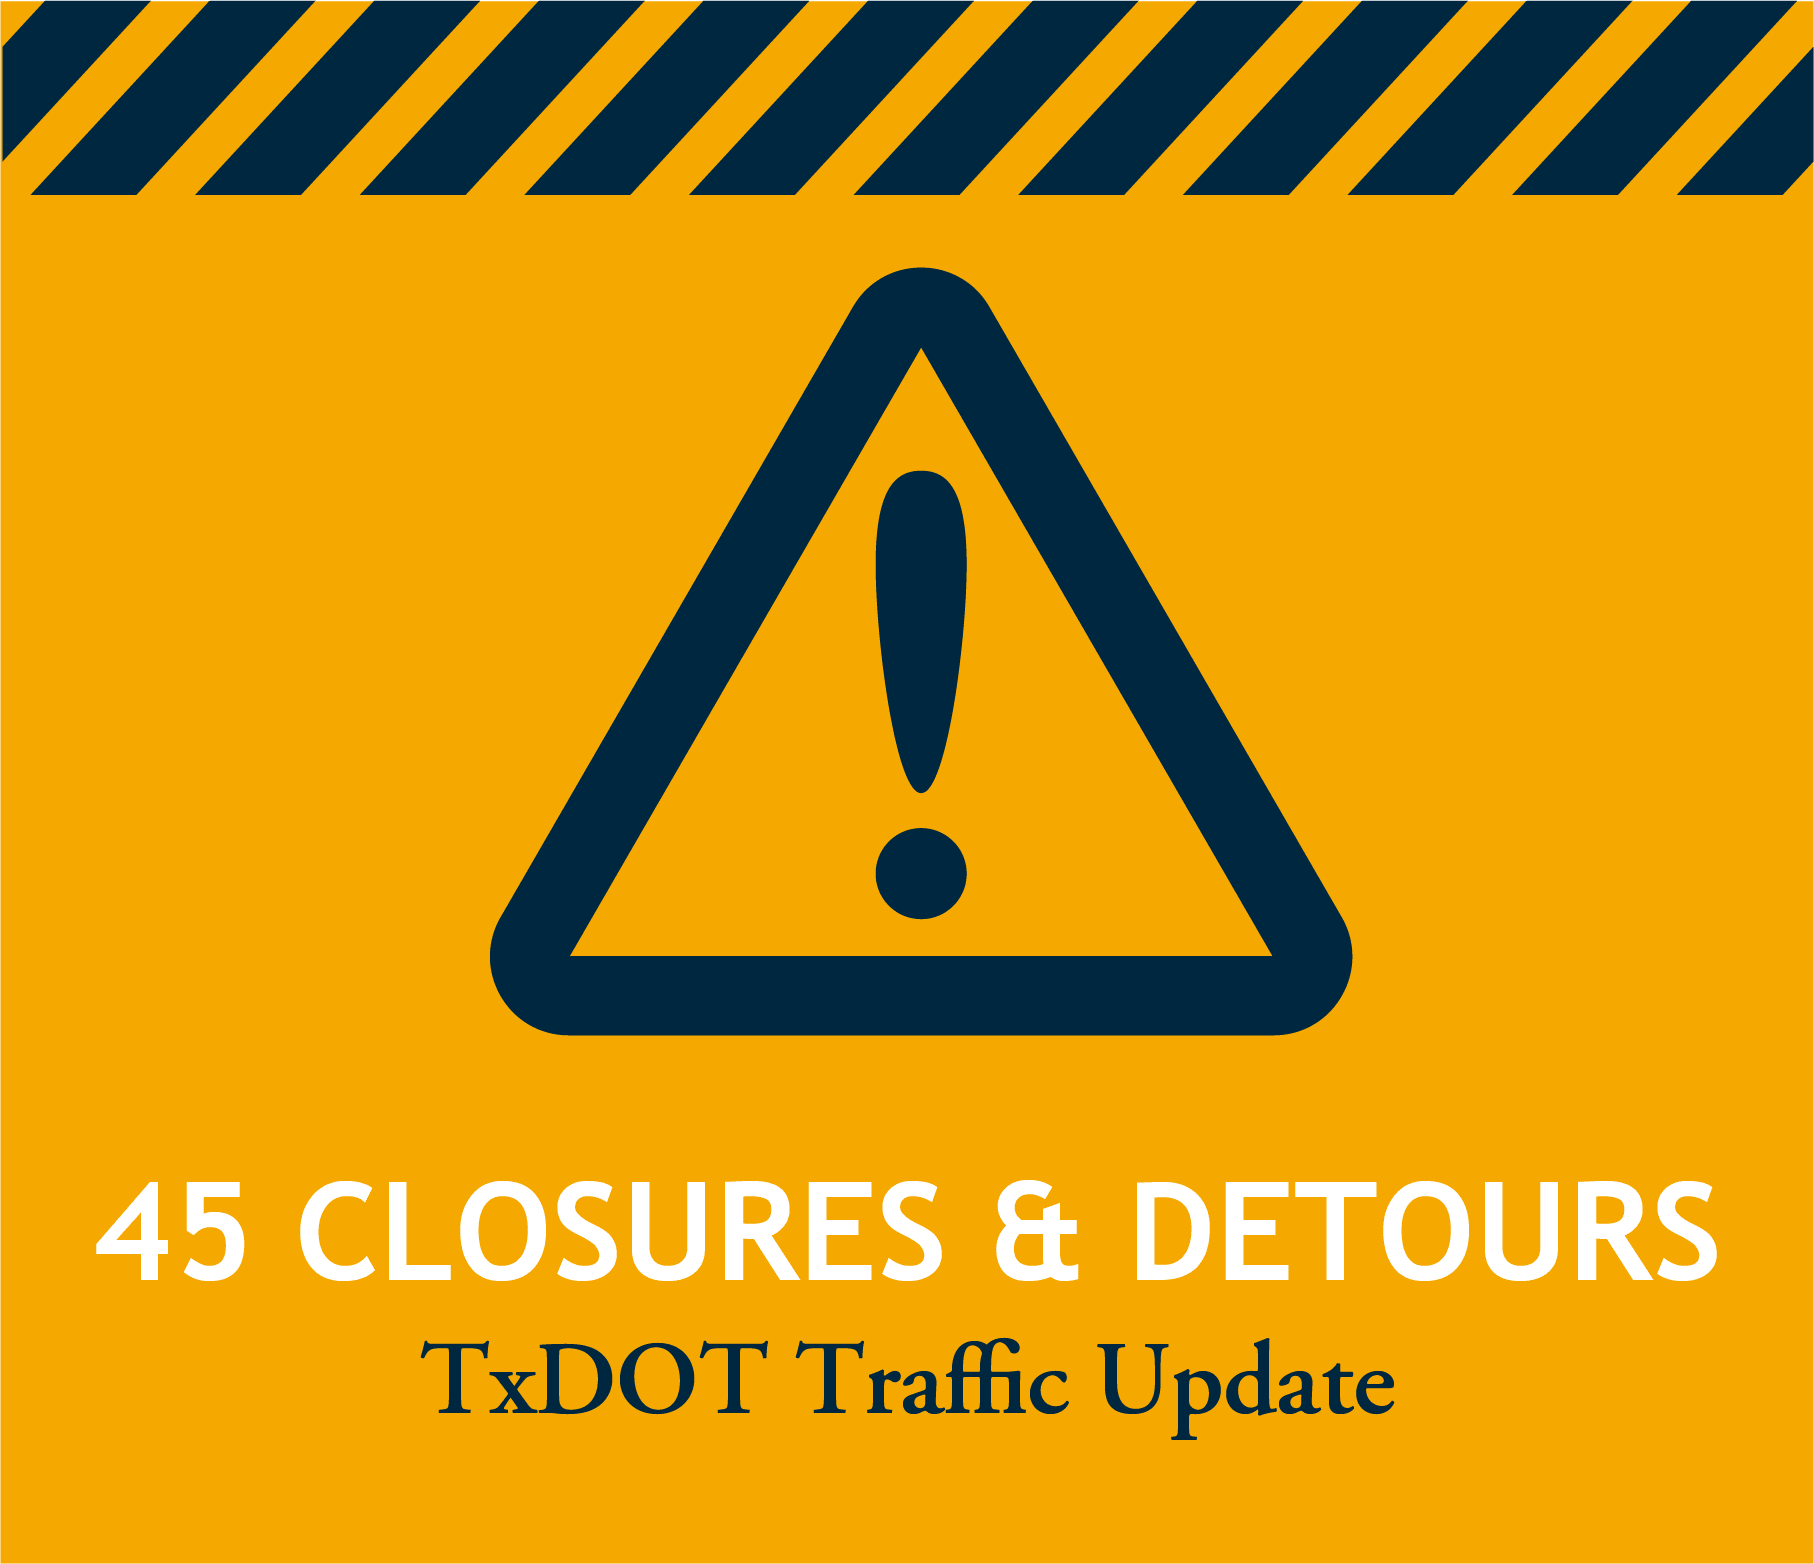 Traffic_Colsures and Detours graphic with caution sign